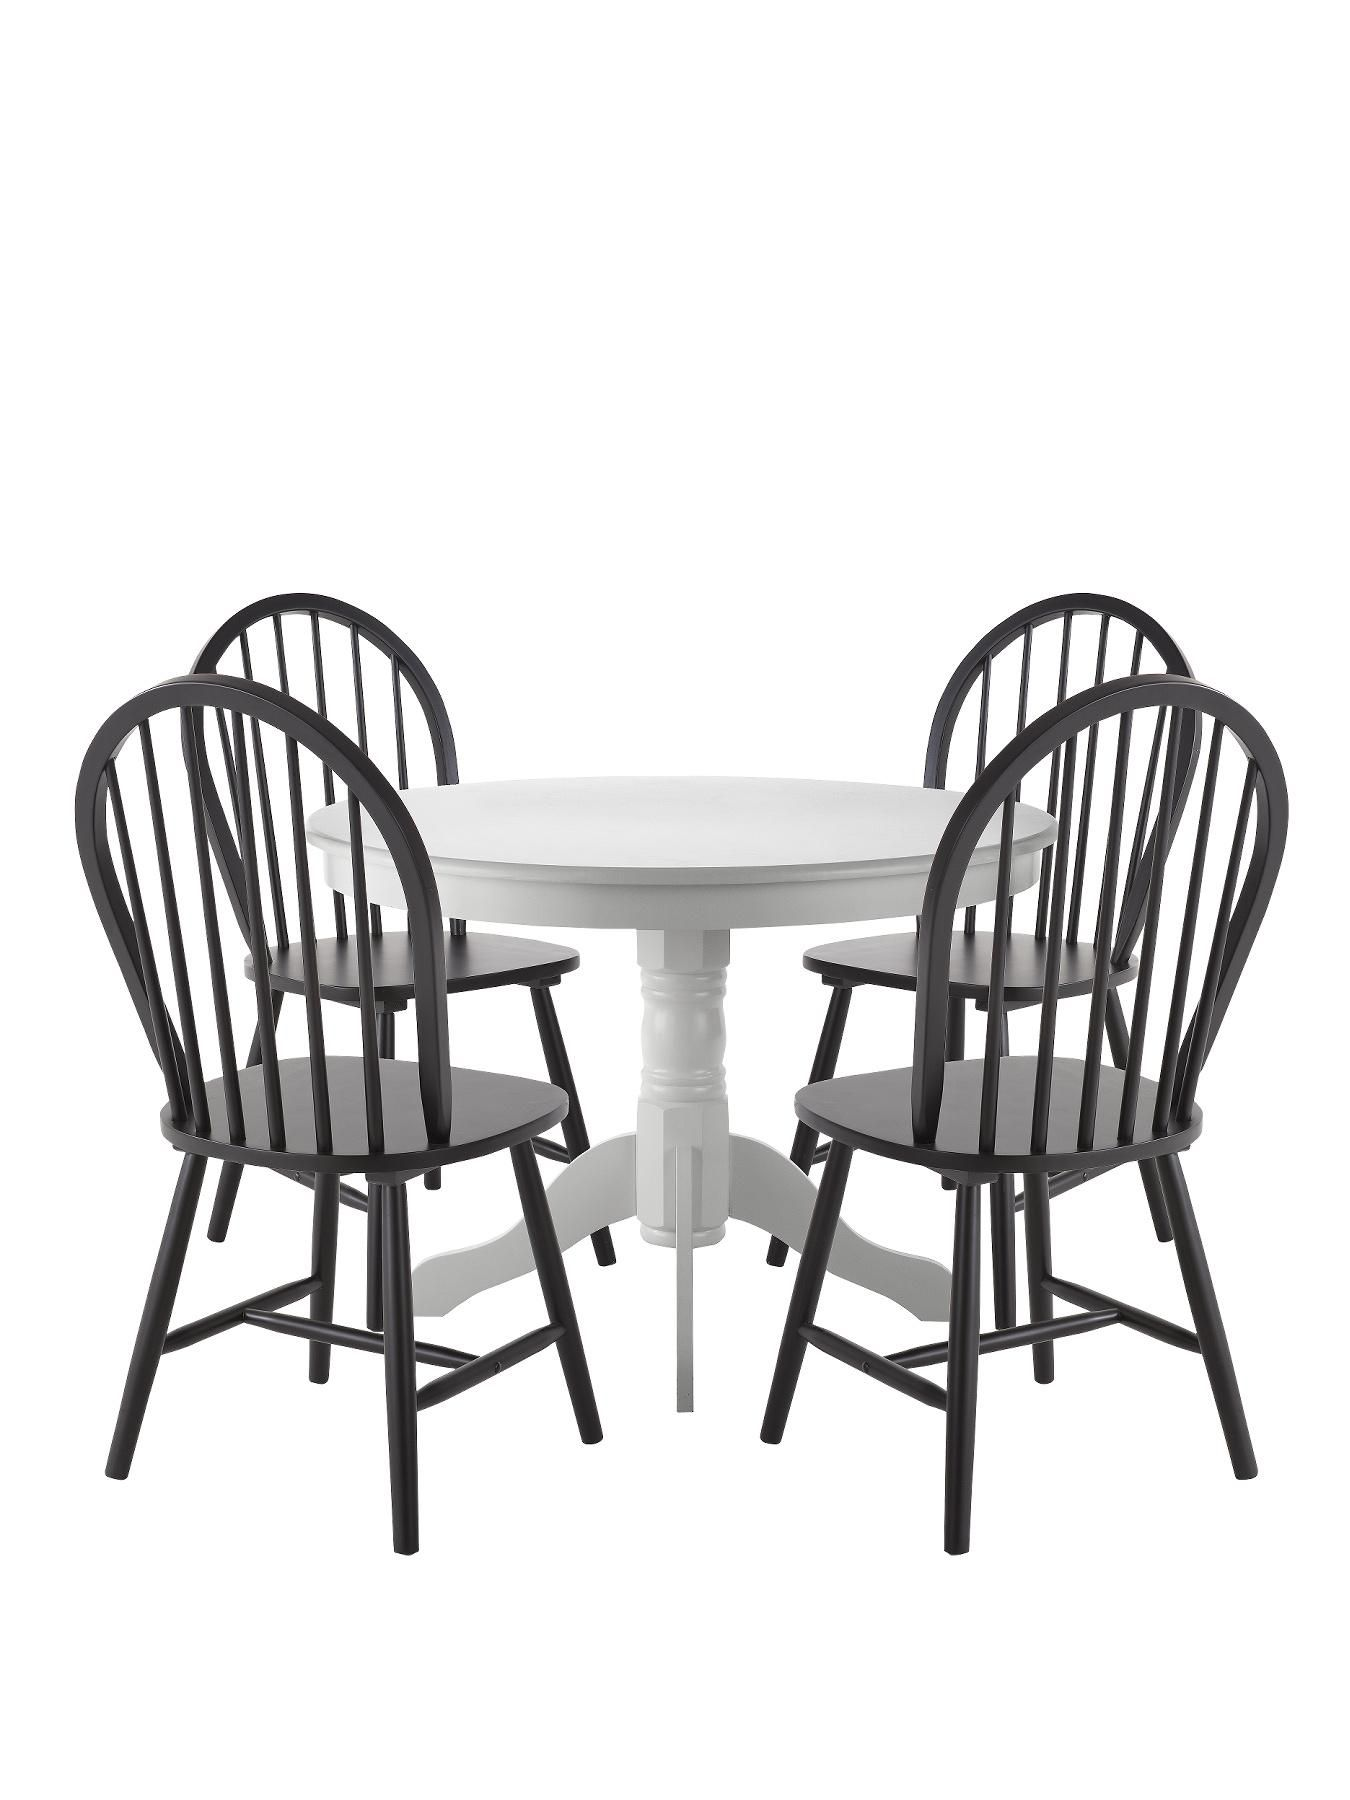 Kentucky White Dining Table with 4 Black Chairs  06d8f49bde